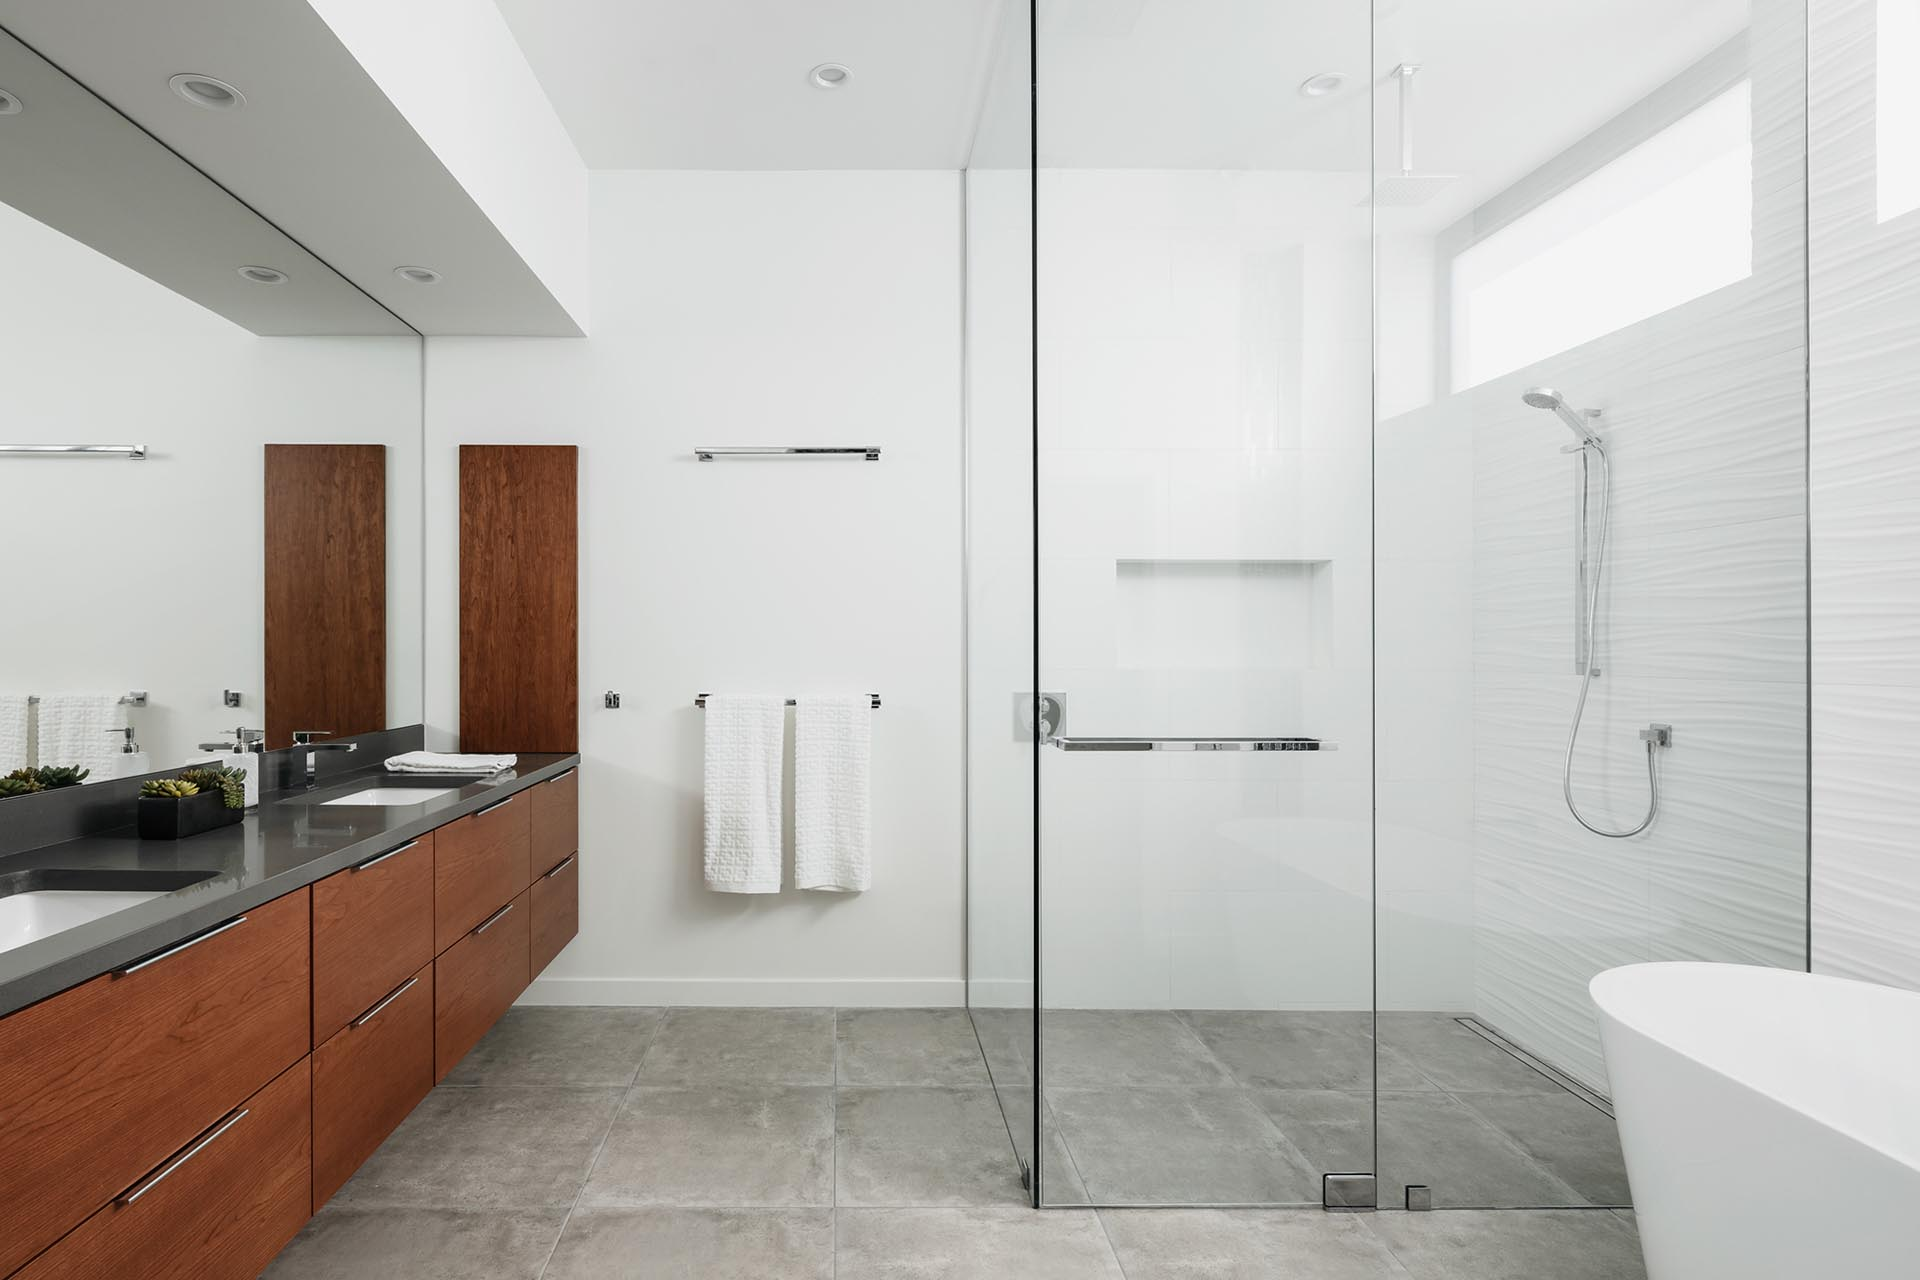 In this modern master bathroom, a floating wood vanity is topped with dark gray quartz counters, a step free shower with frameless glass is positioned in the corner, and an adjacent free-standing tub has a backdrop of a 3d tile wall.